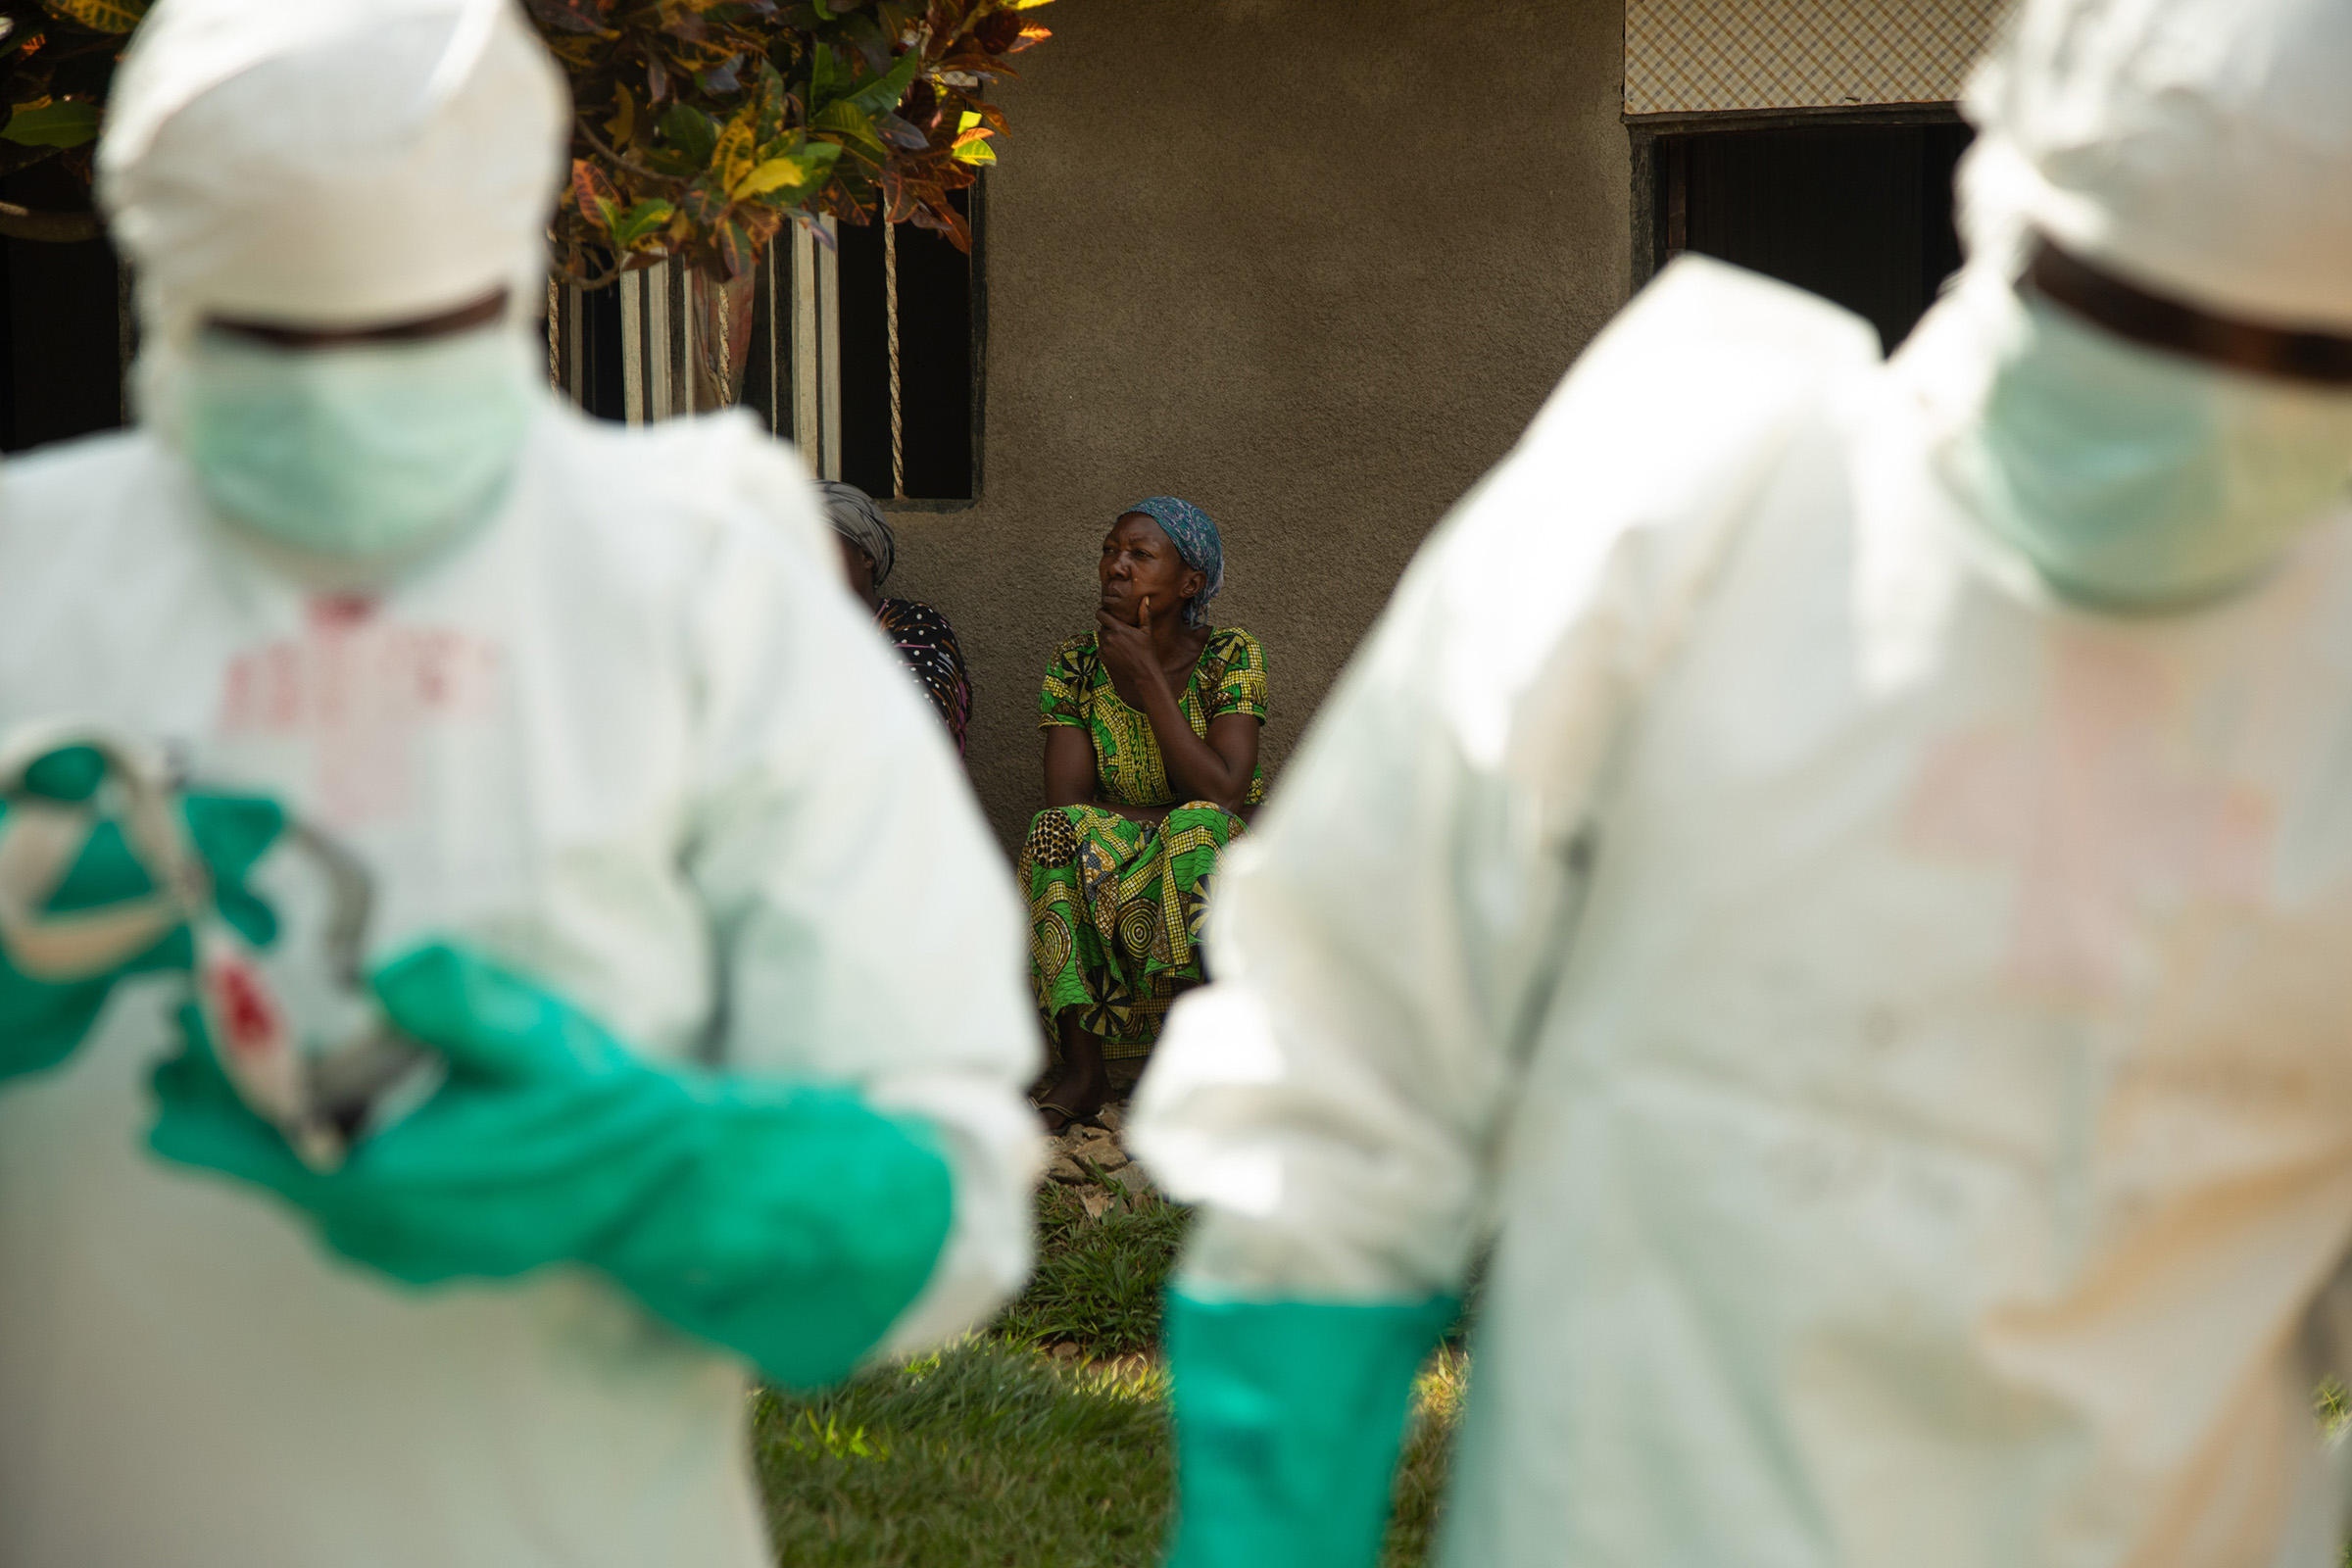 A Red Cross Safe and Dignified Burial team (SDB) responds to an alert from family members who have lost a loved one suspected of having died of ebola, in Beni, The Democratic Republic of the Congo on June 2nd 2019.